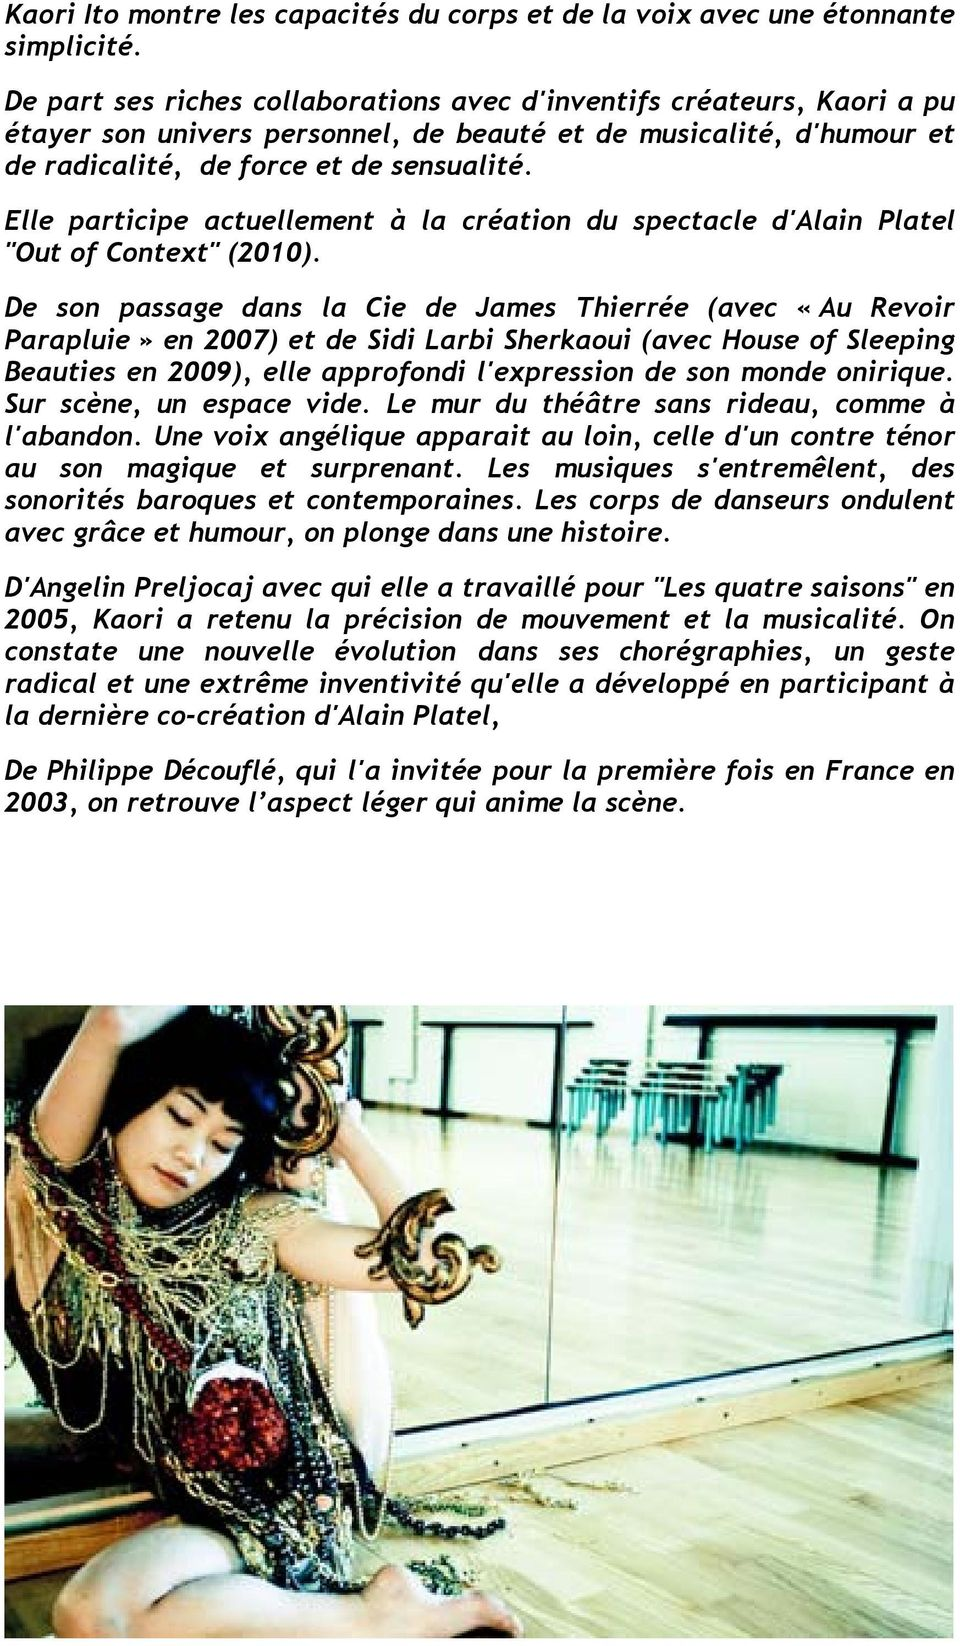 "Elle participe actuellement à la création du spectacle d'alain Platel ""Out of Context"" (2010)."